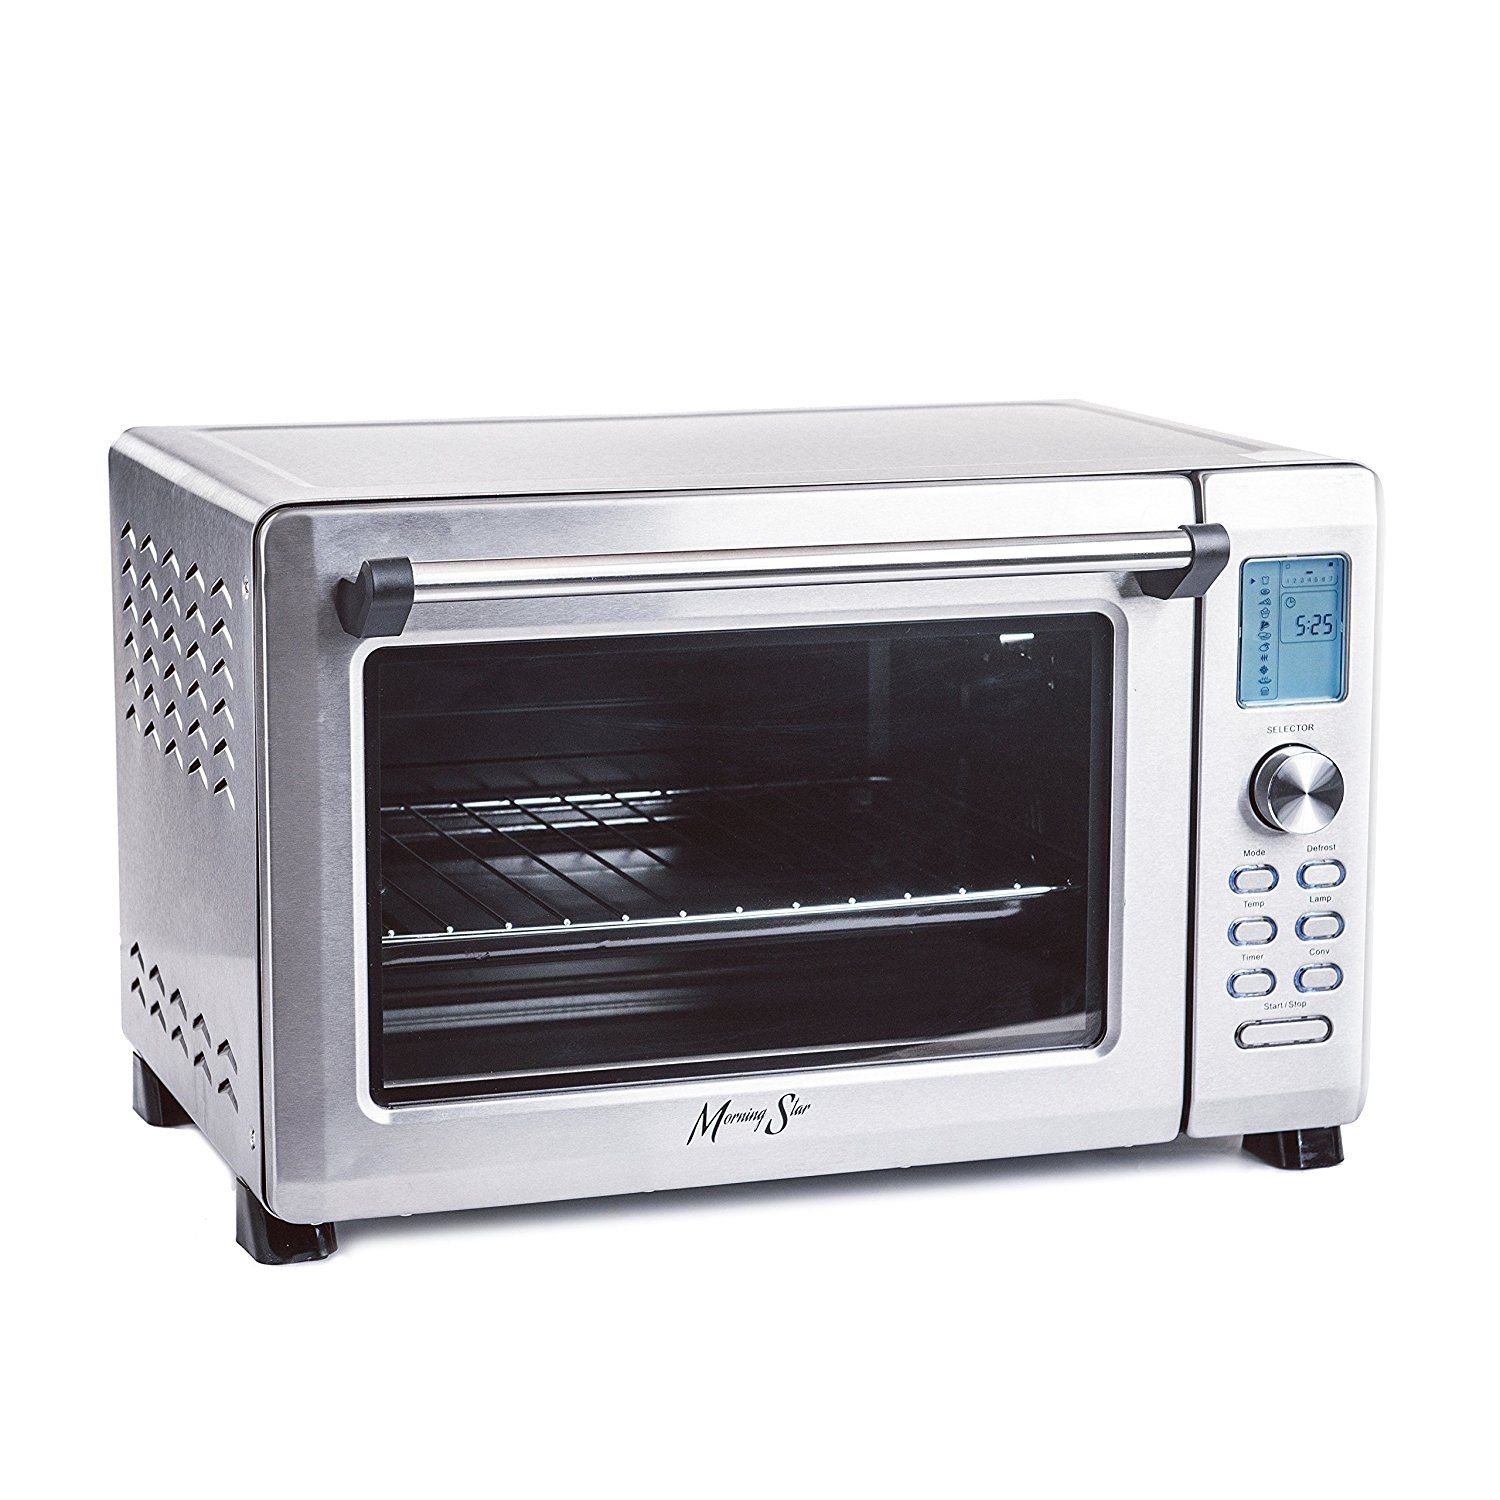 Morning Star Infrared Xl Capacity Countertop 12 Slice Digital Convection Toaster Oven Polished Sta Toaster Oven Convection Toaster Oven